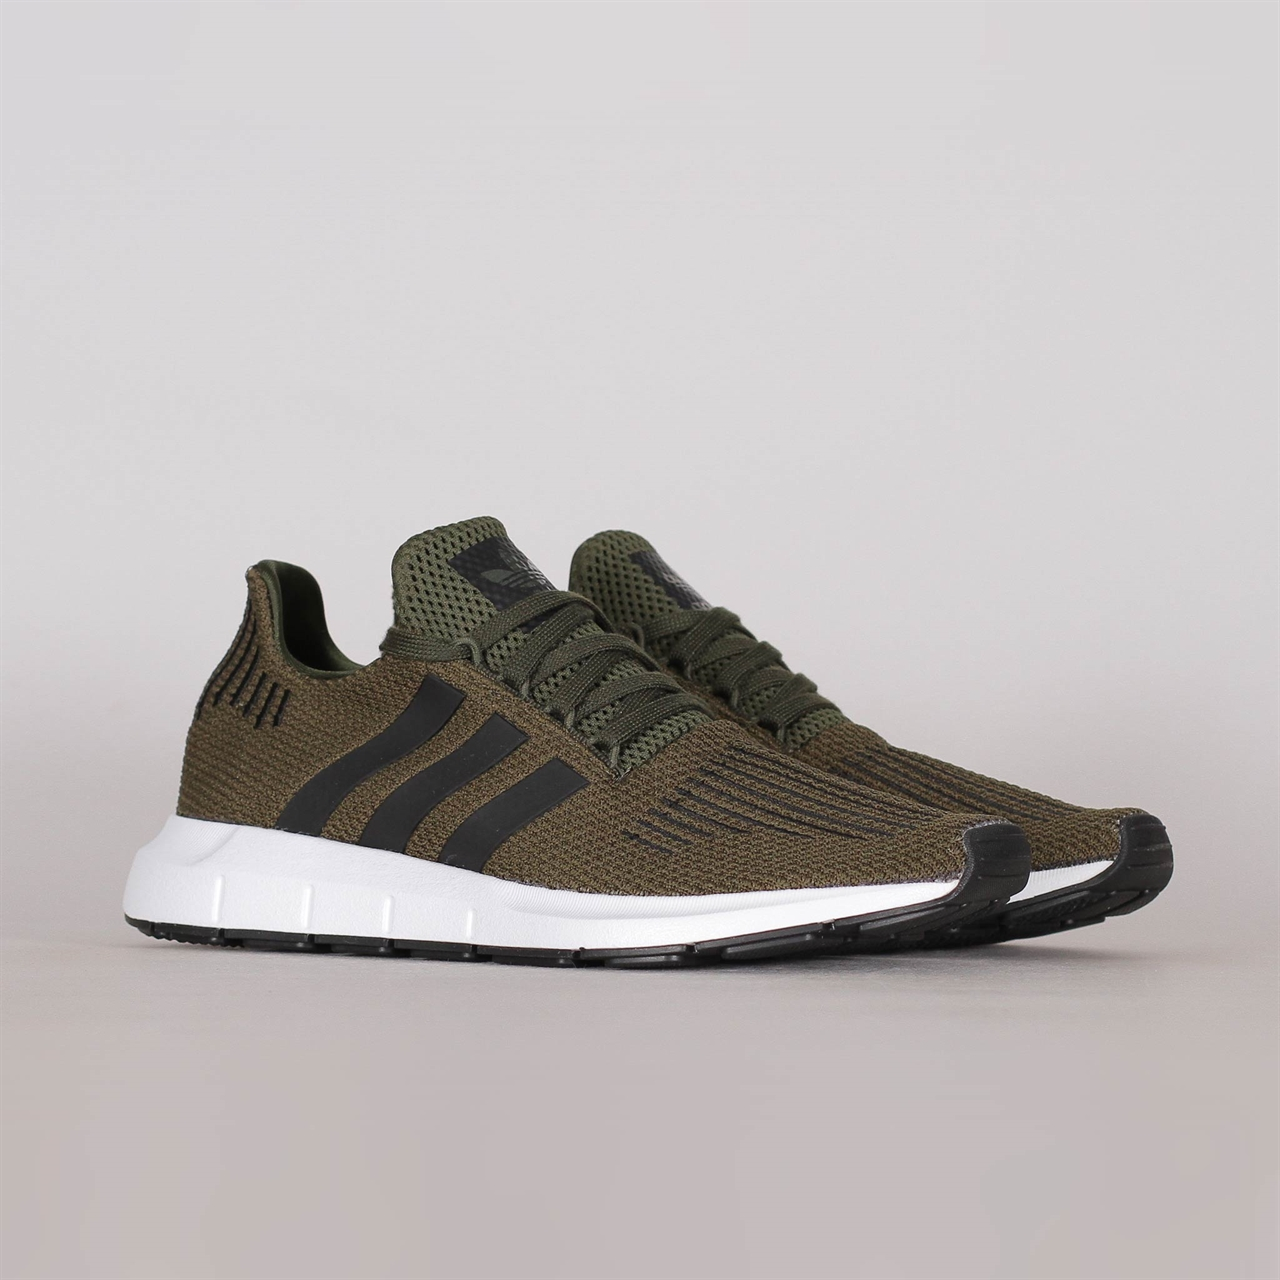 334a918e62696 Shelta - Adidas Originals Swift Run (CG6167)